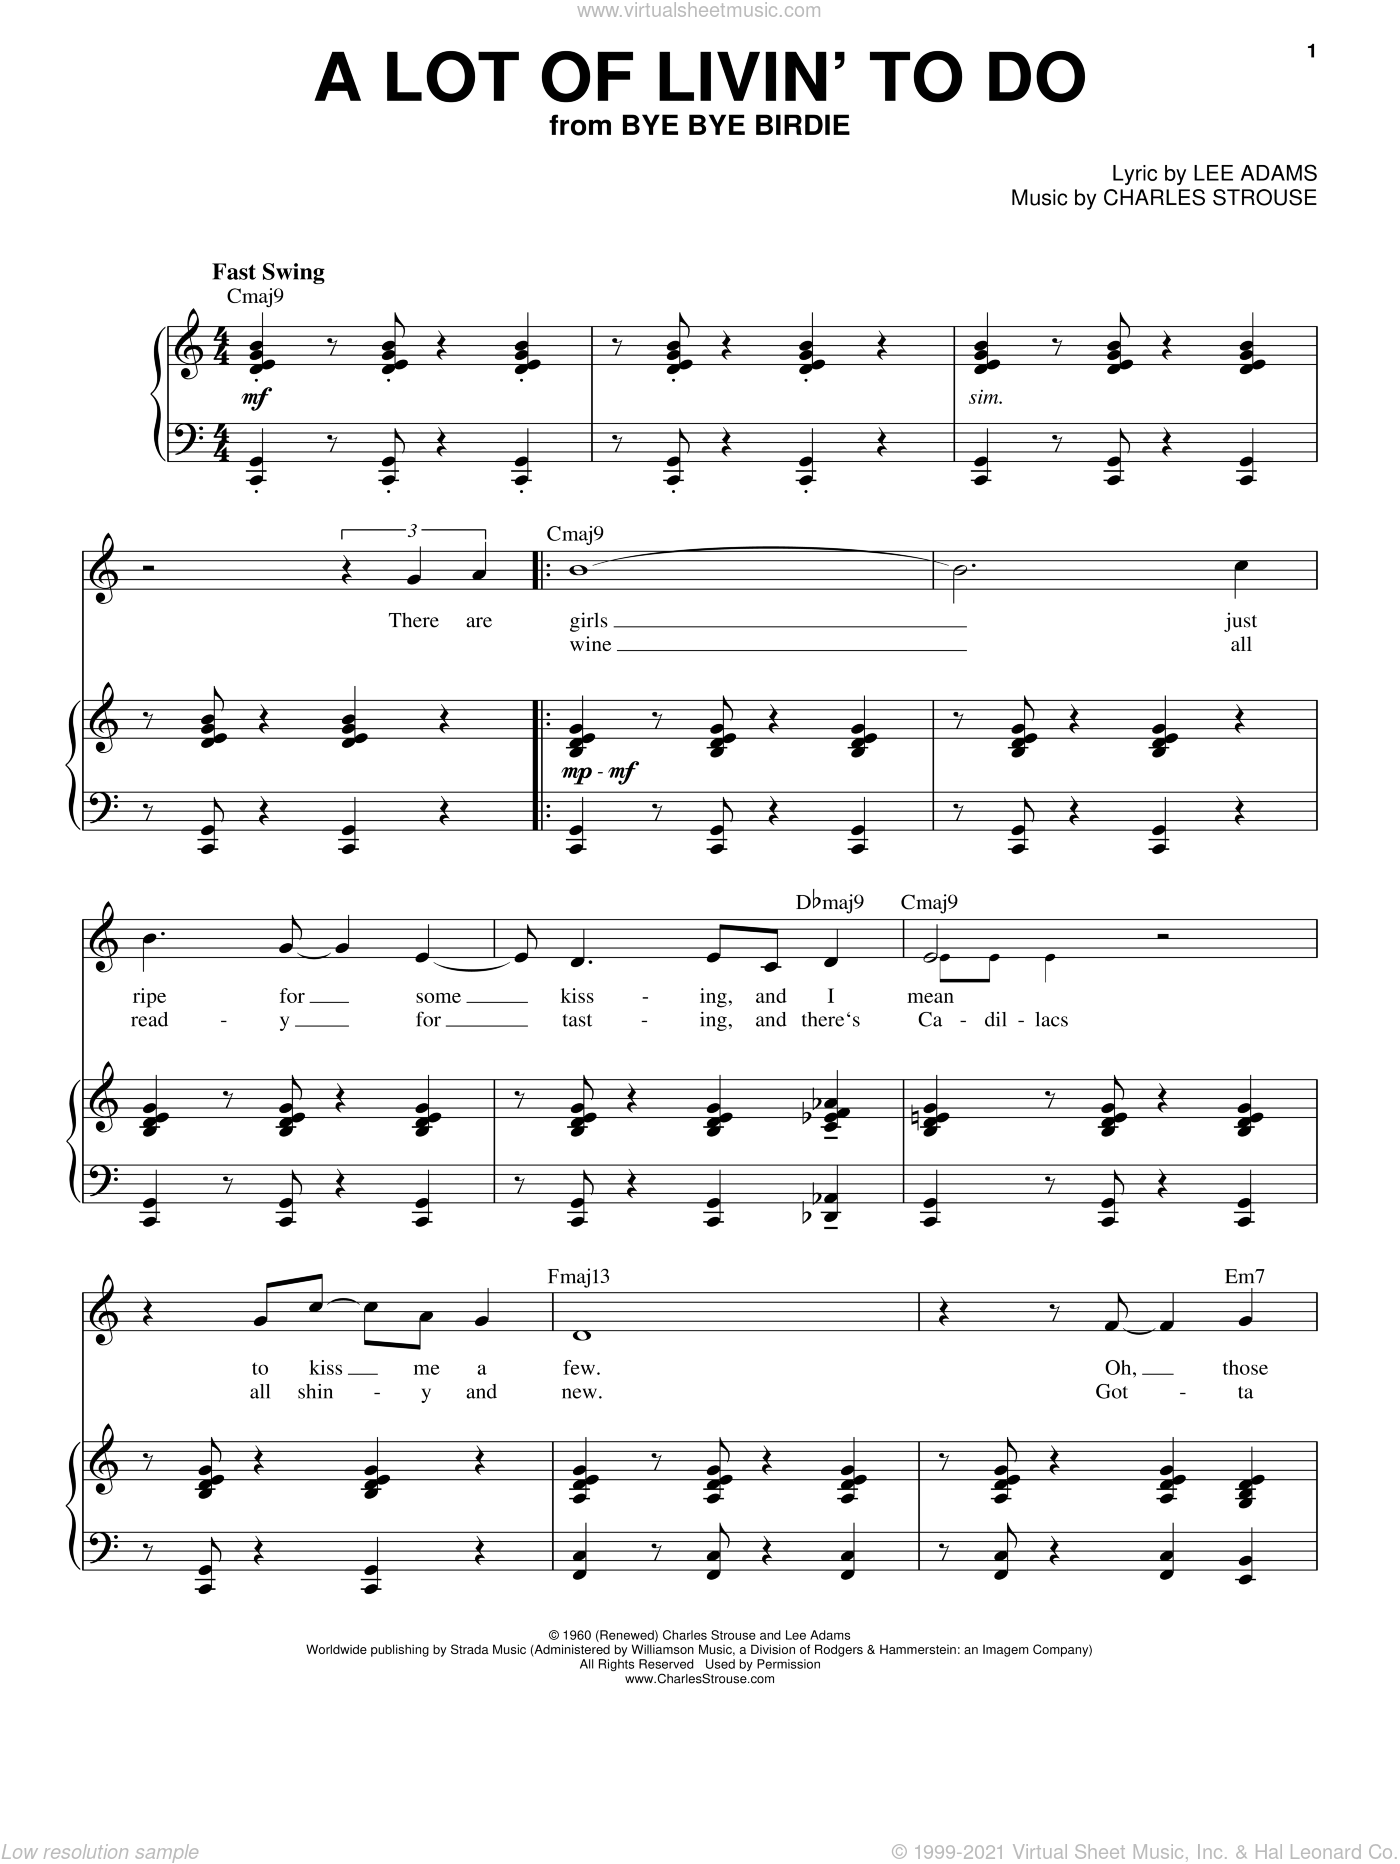 A Lot Of Livin' To Do sheet music for voice and piano by Lee Adams, Bryan Adams, Dean Martin, Frank Sinatra and Charles Strouse. Score Image Preview.